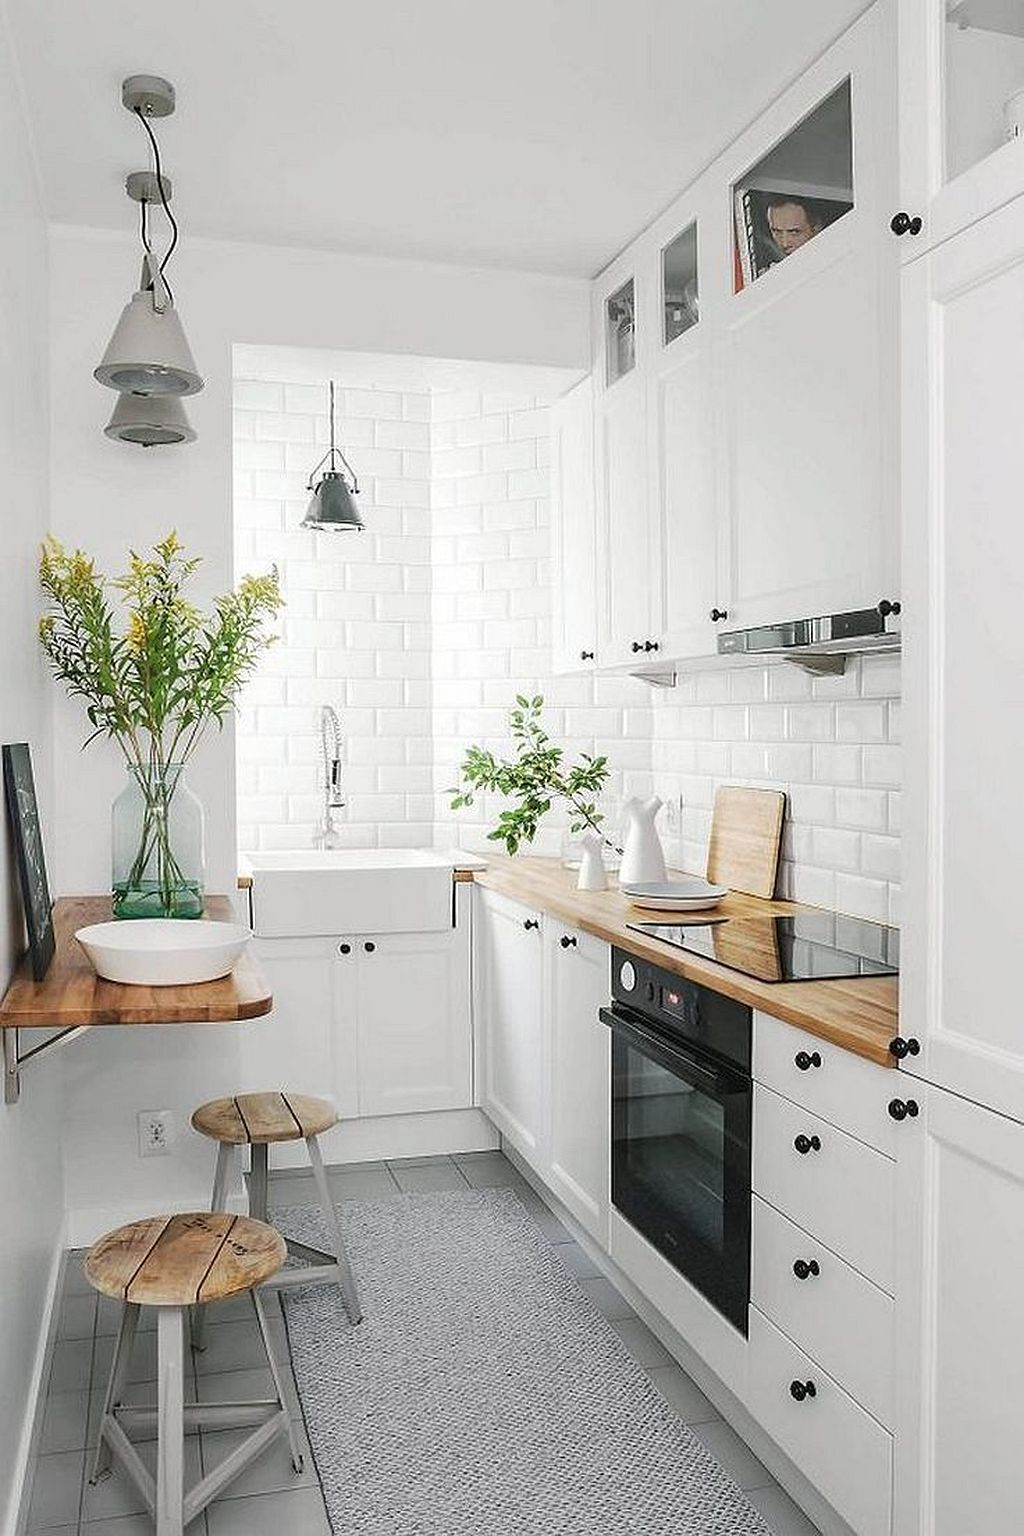 30+ Great Interior Design Ideas For Small Space | Pinterest | Küche ...